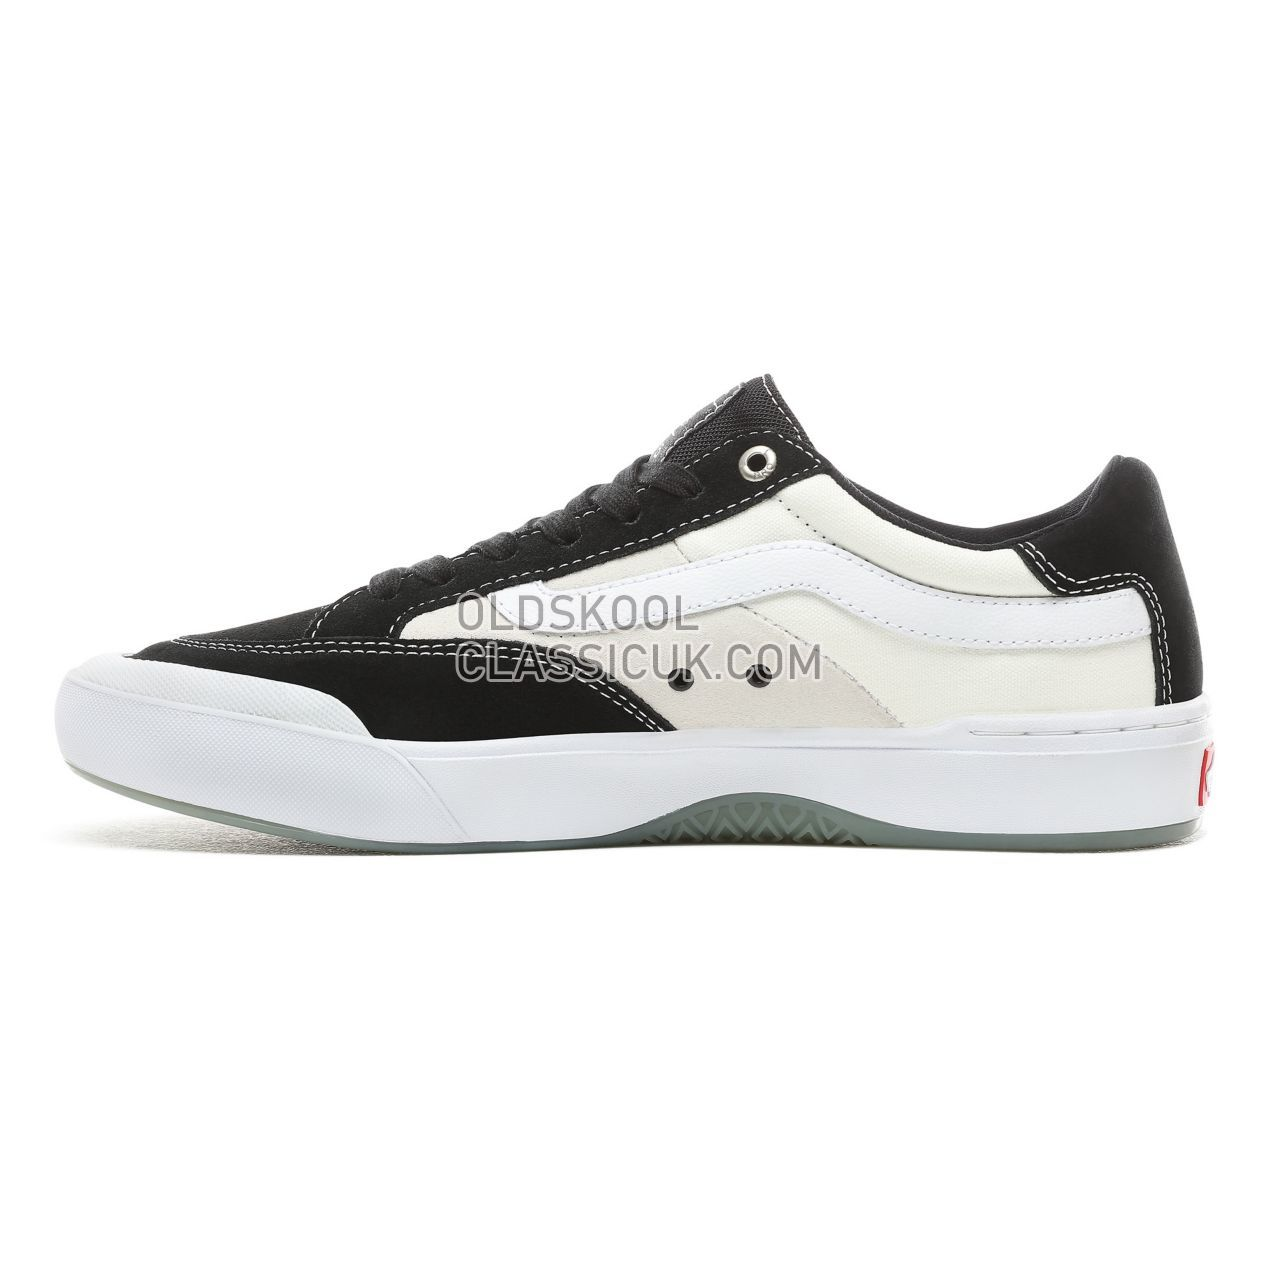 Vans Berle Pro Sneakers Mens Black-White VN0A3WKXY28 Shoes